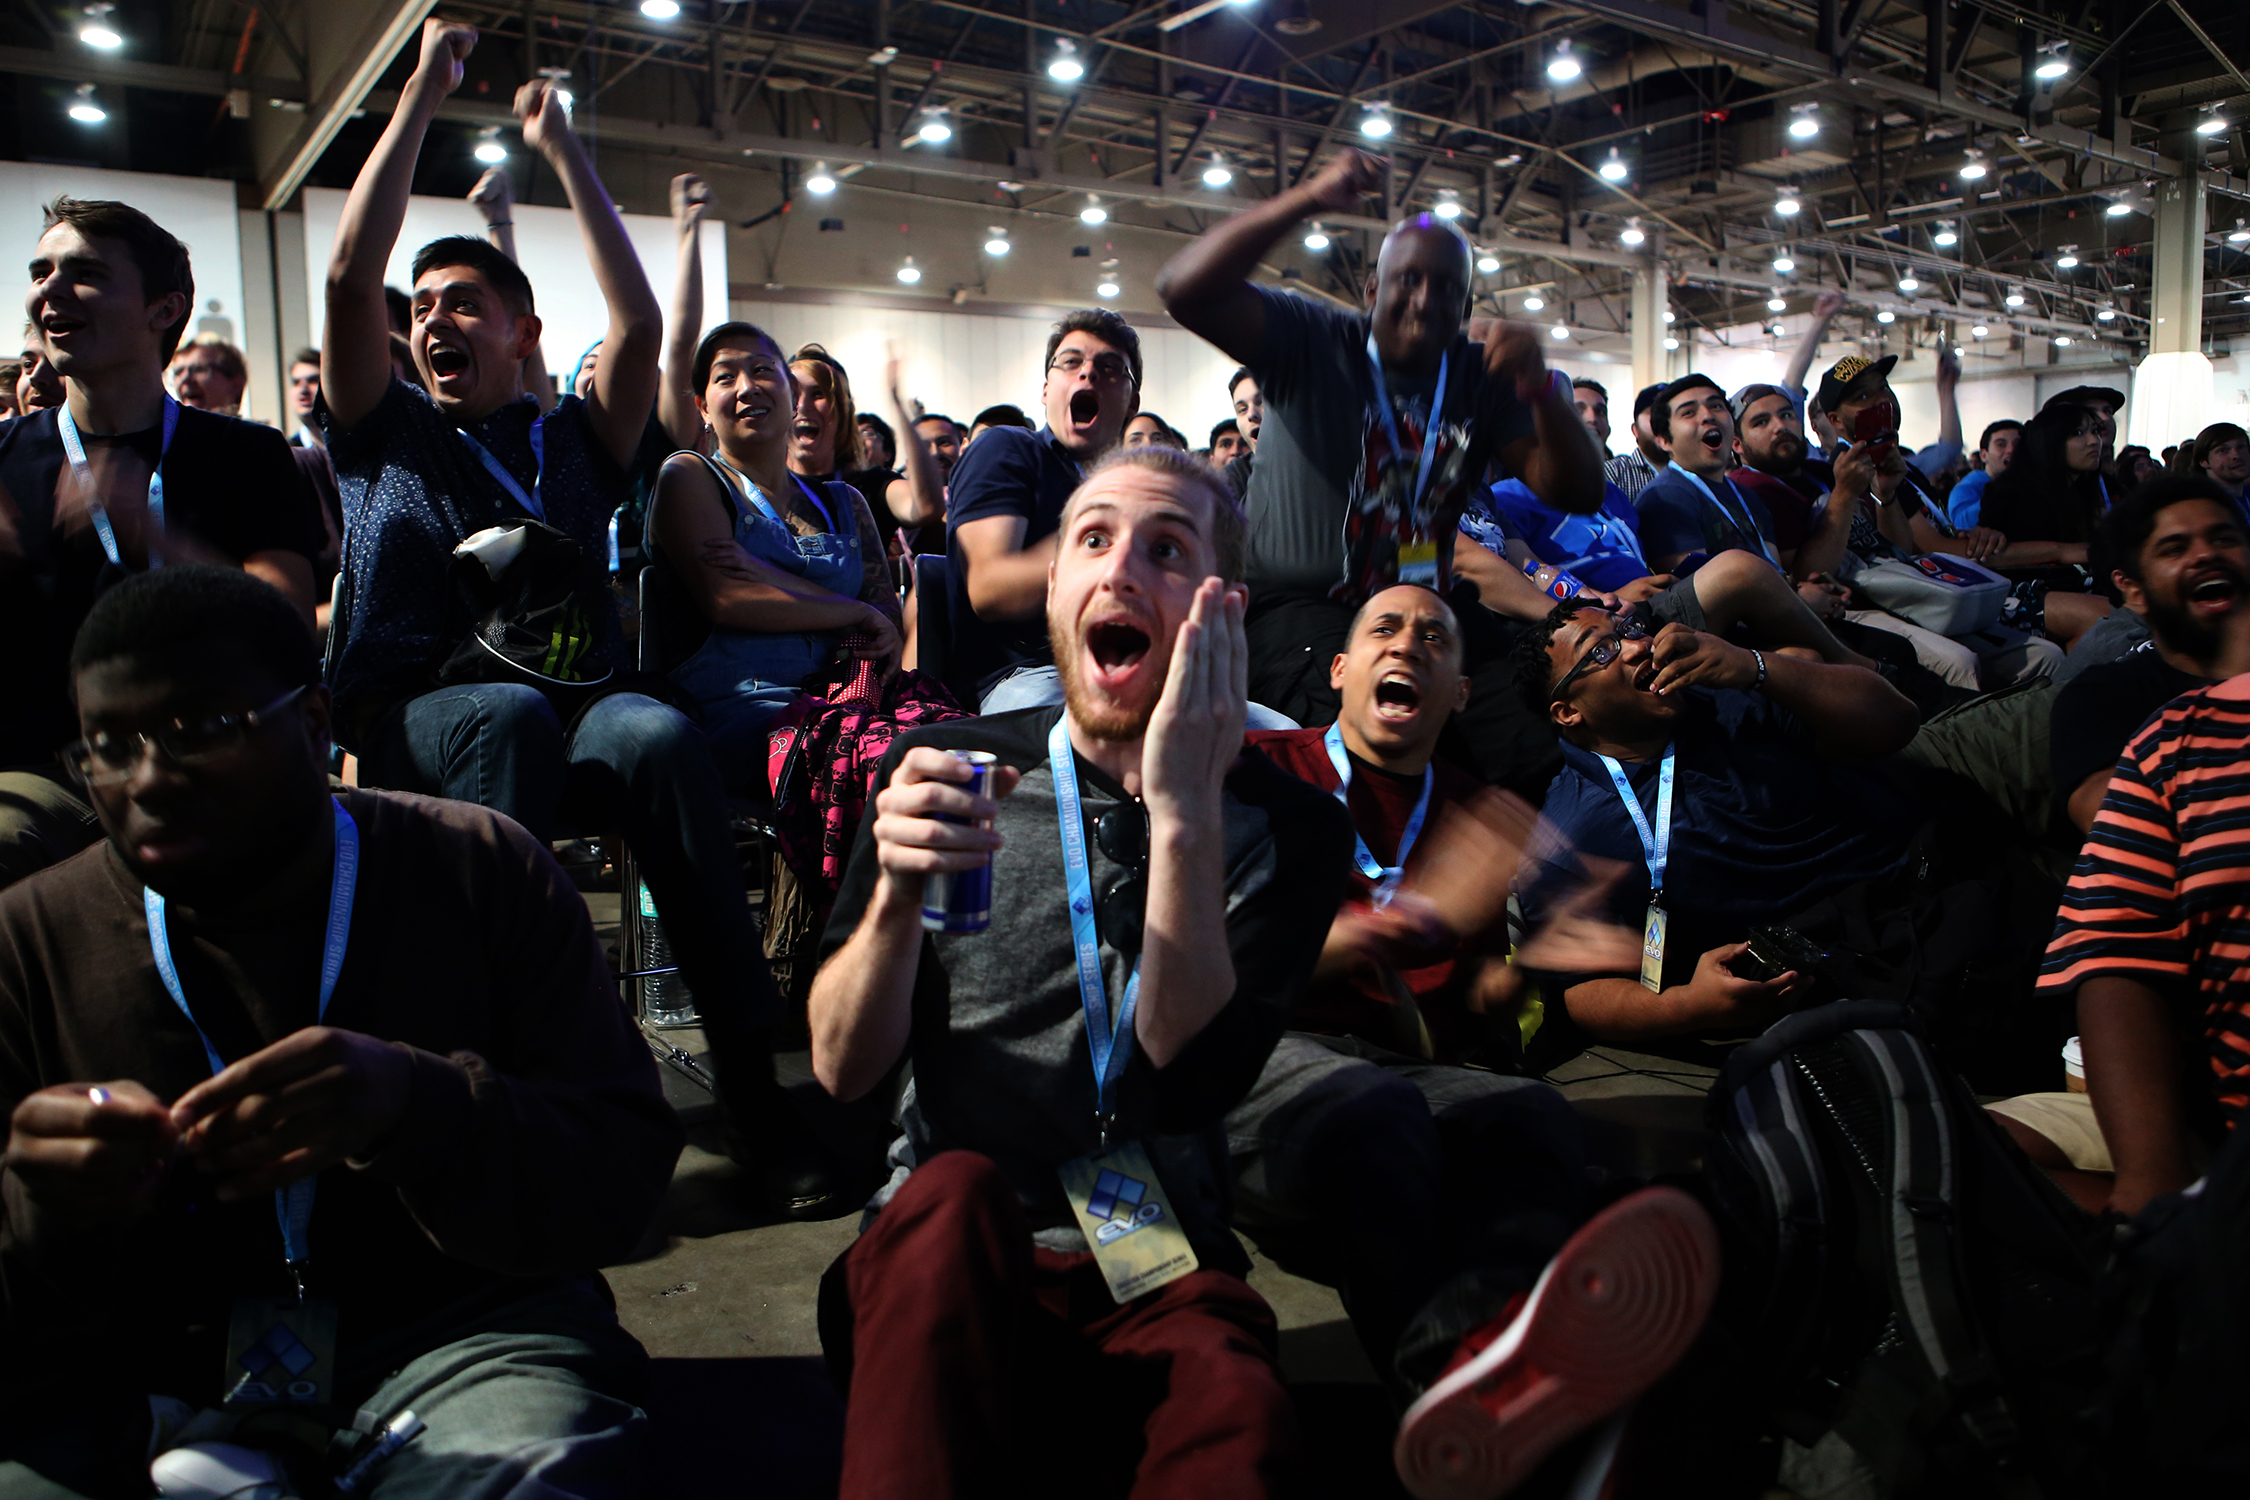 Fans jump out of their seats during the Smash Bros. for a Wii U winner's bracket semifinals match.  © Gail Fisher for ESPN